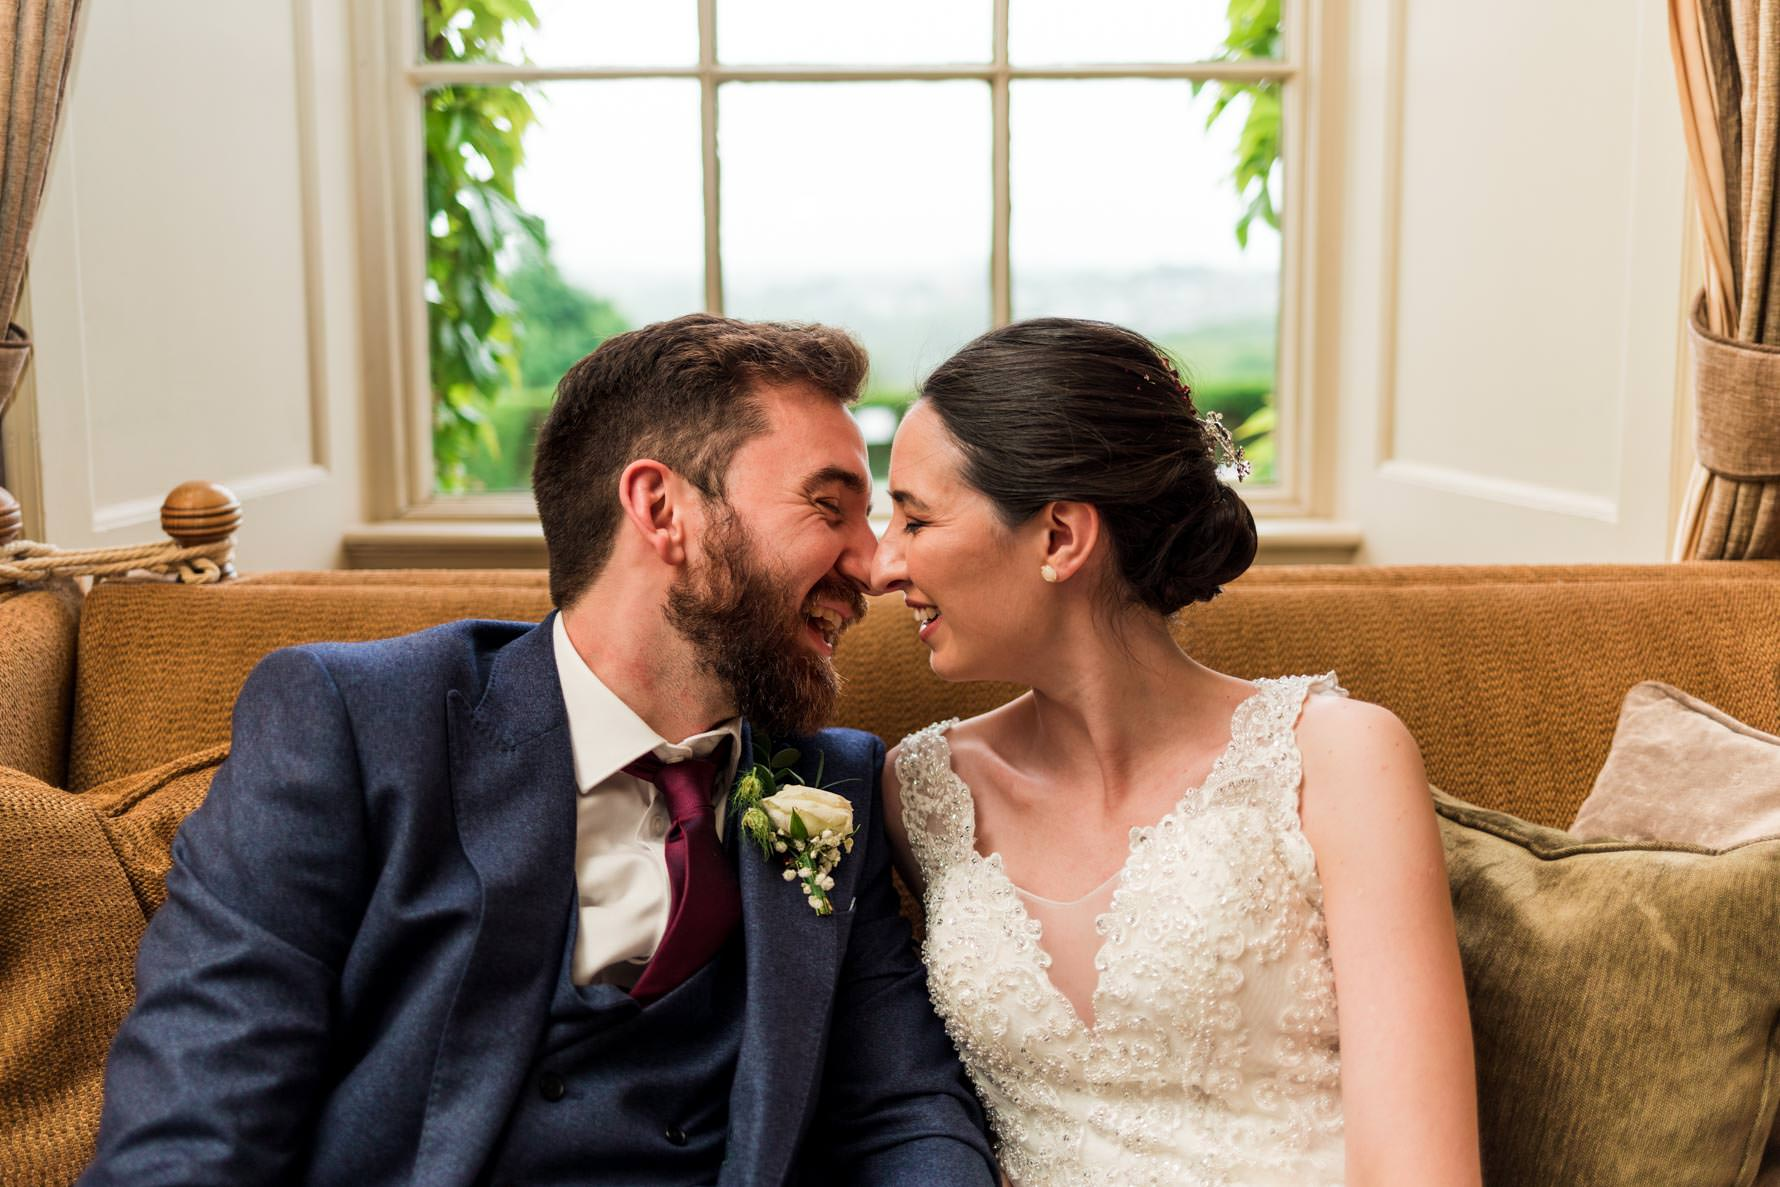 groom and bride Eskimo kiss on brown sofa in front of window